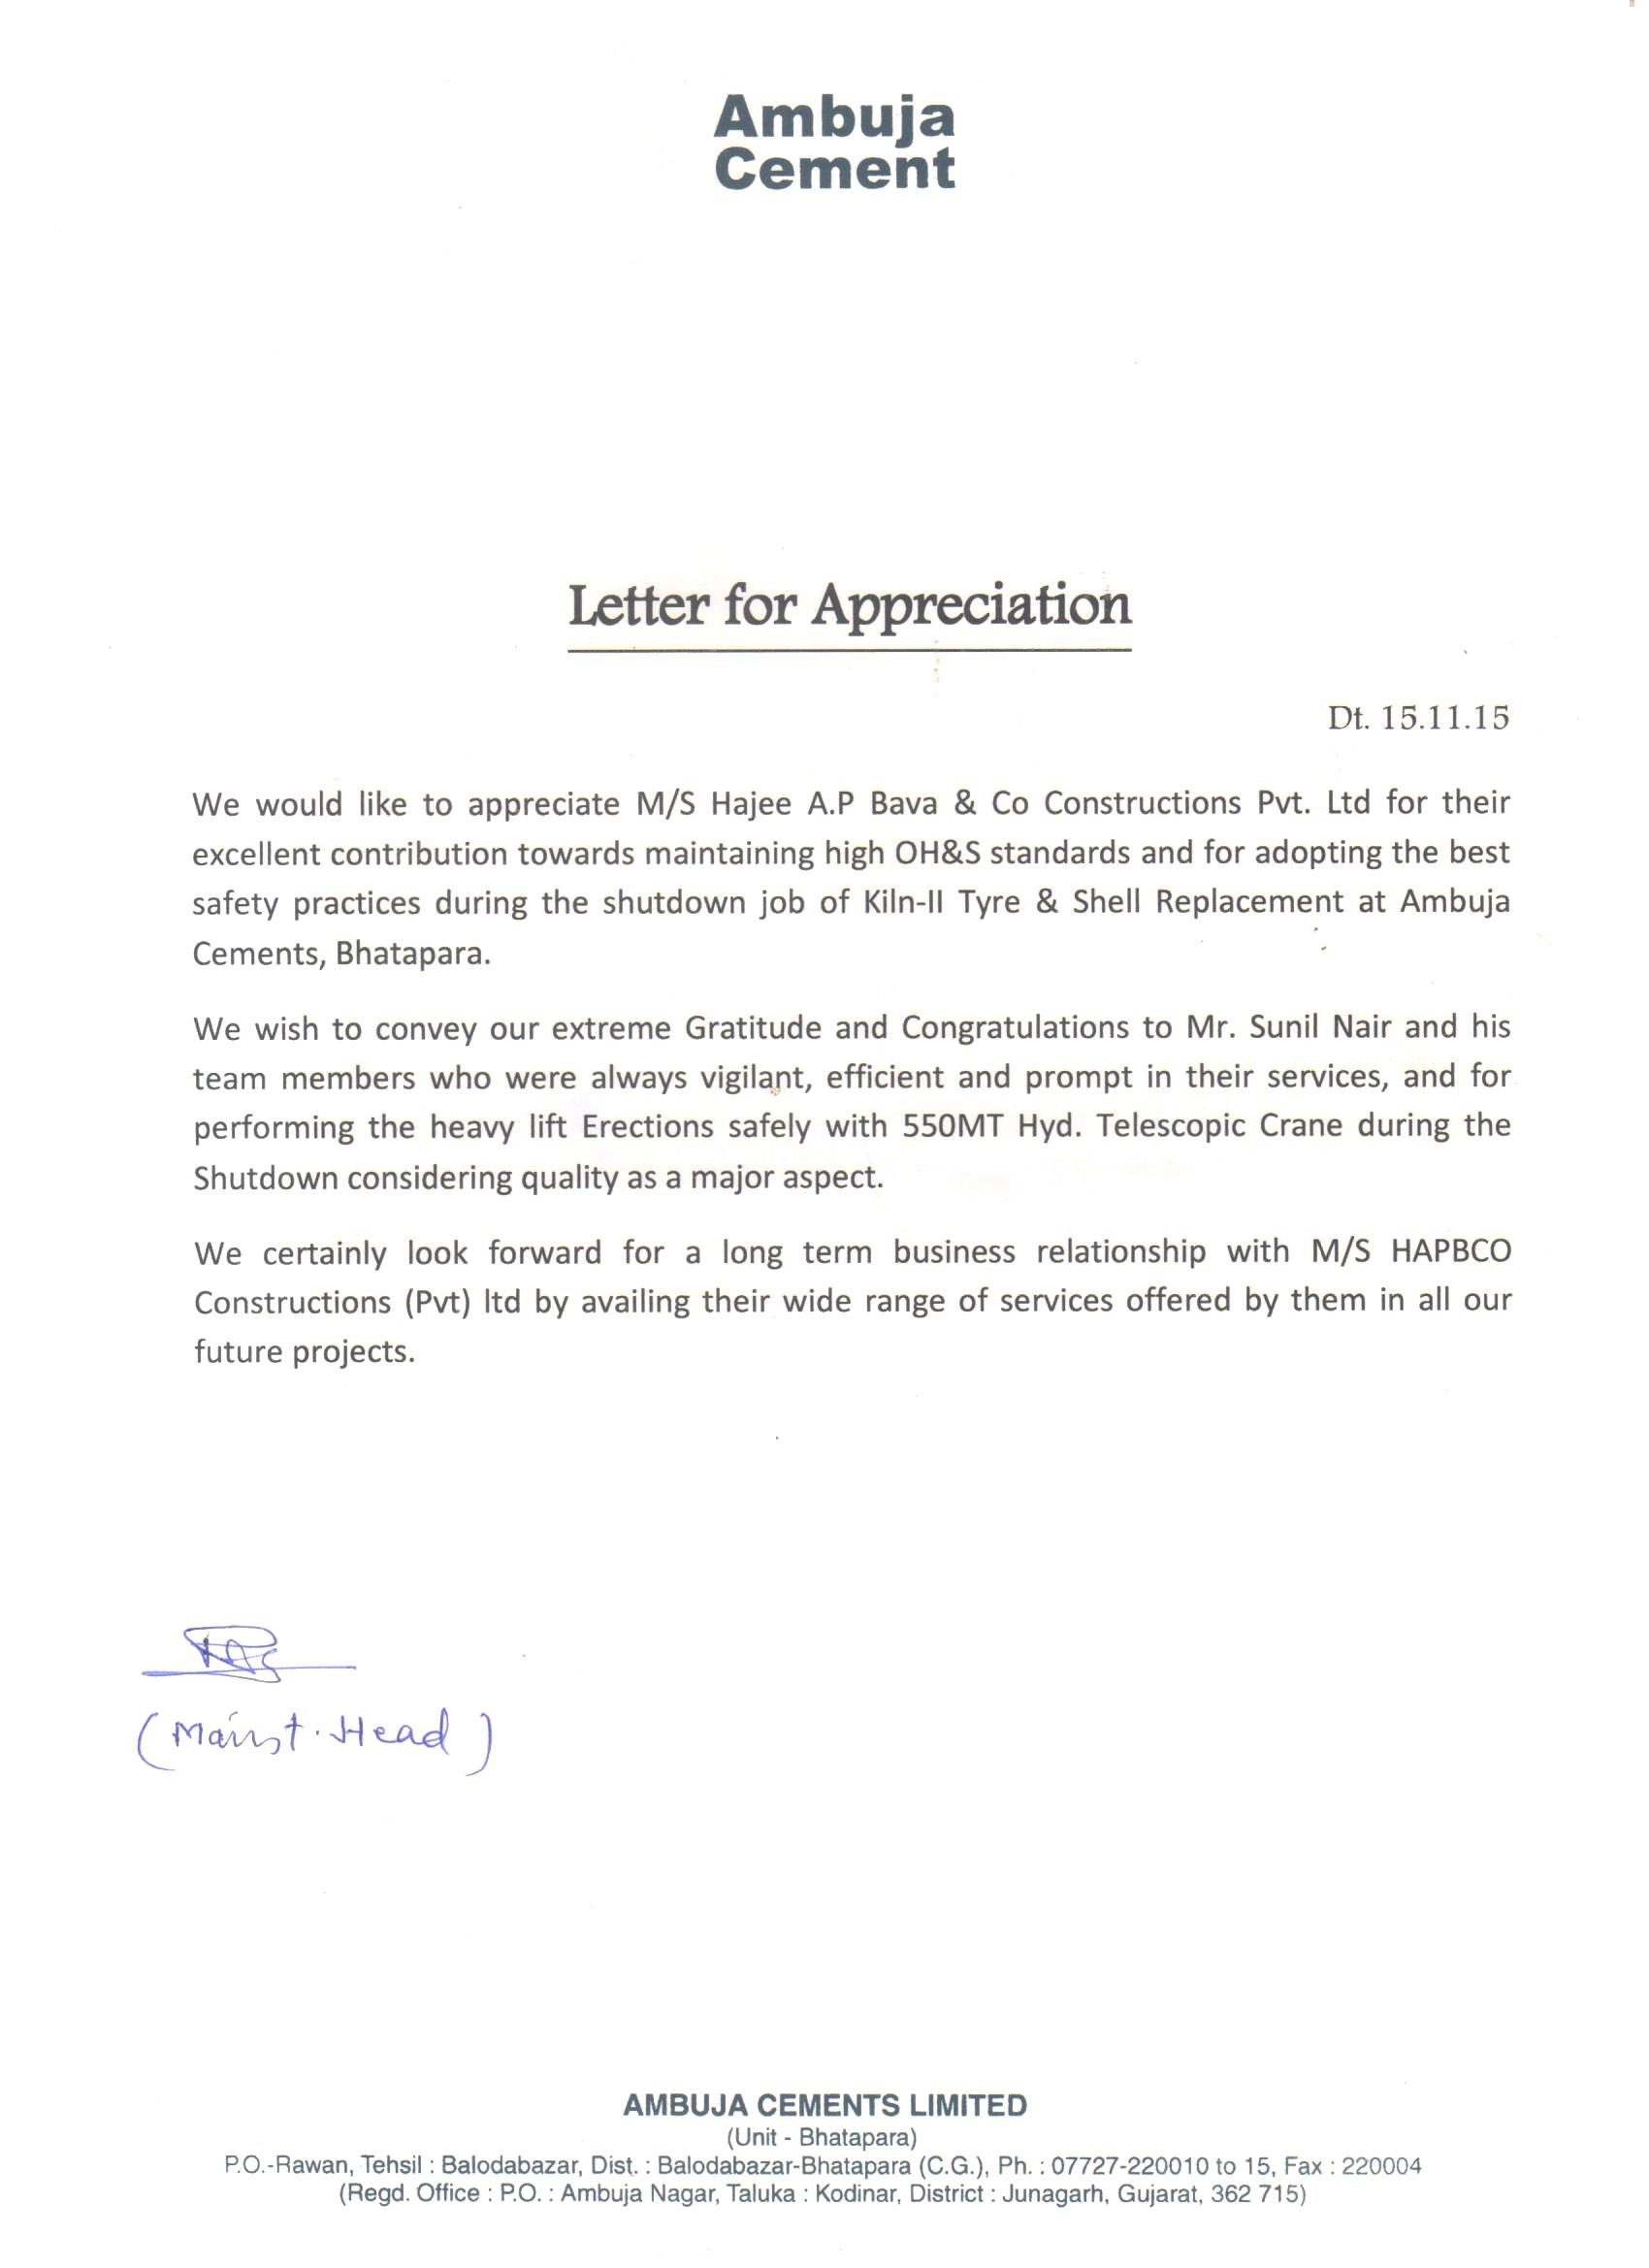 Appreciation Letter from Ambuja Cements